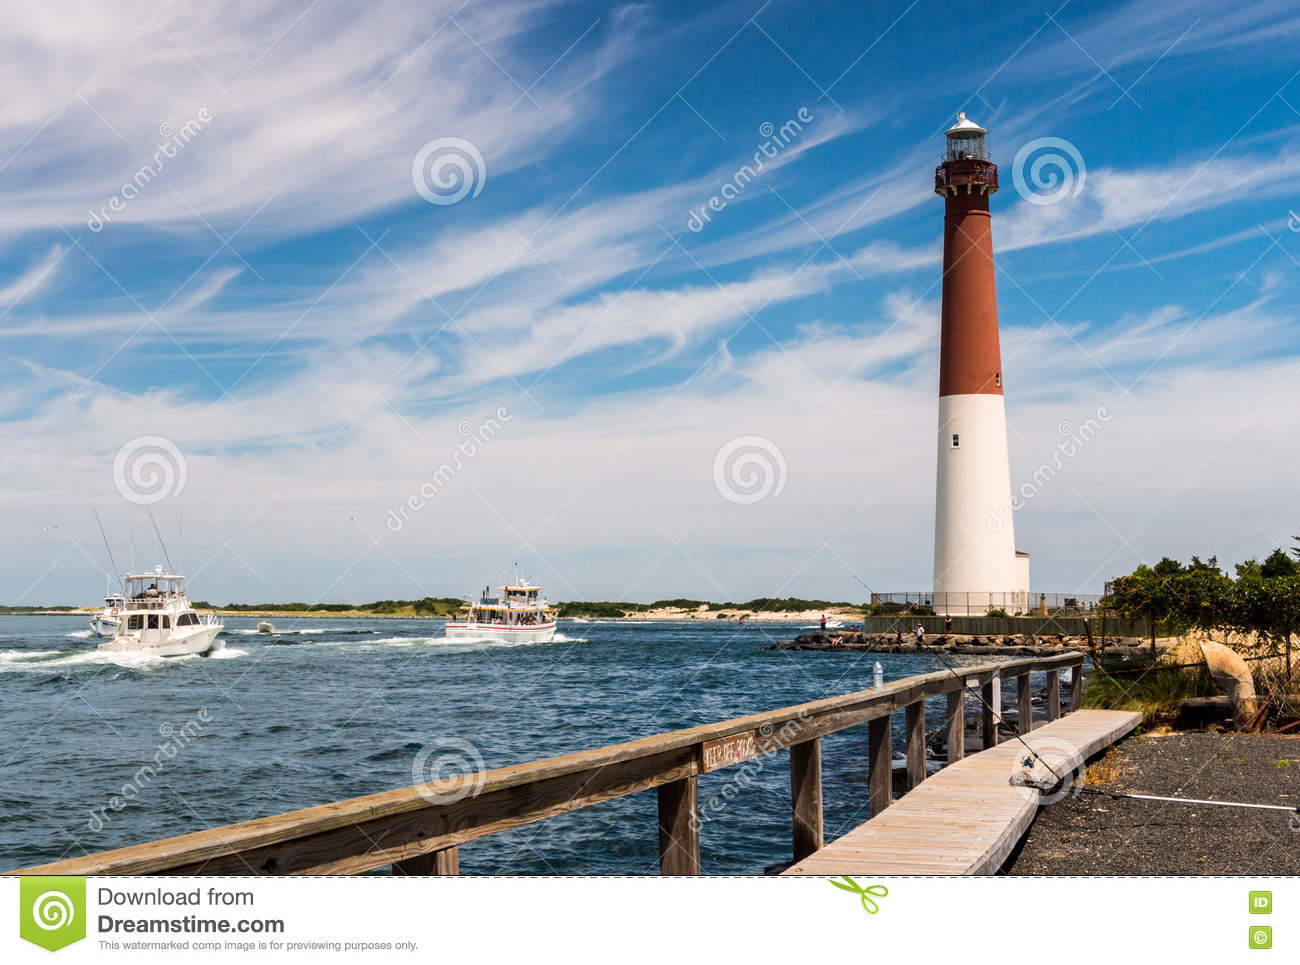 Barnegat inlet and lighthouse in long beach island stock for Long beach fishing boat